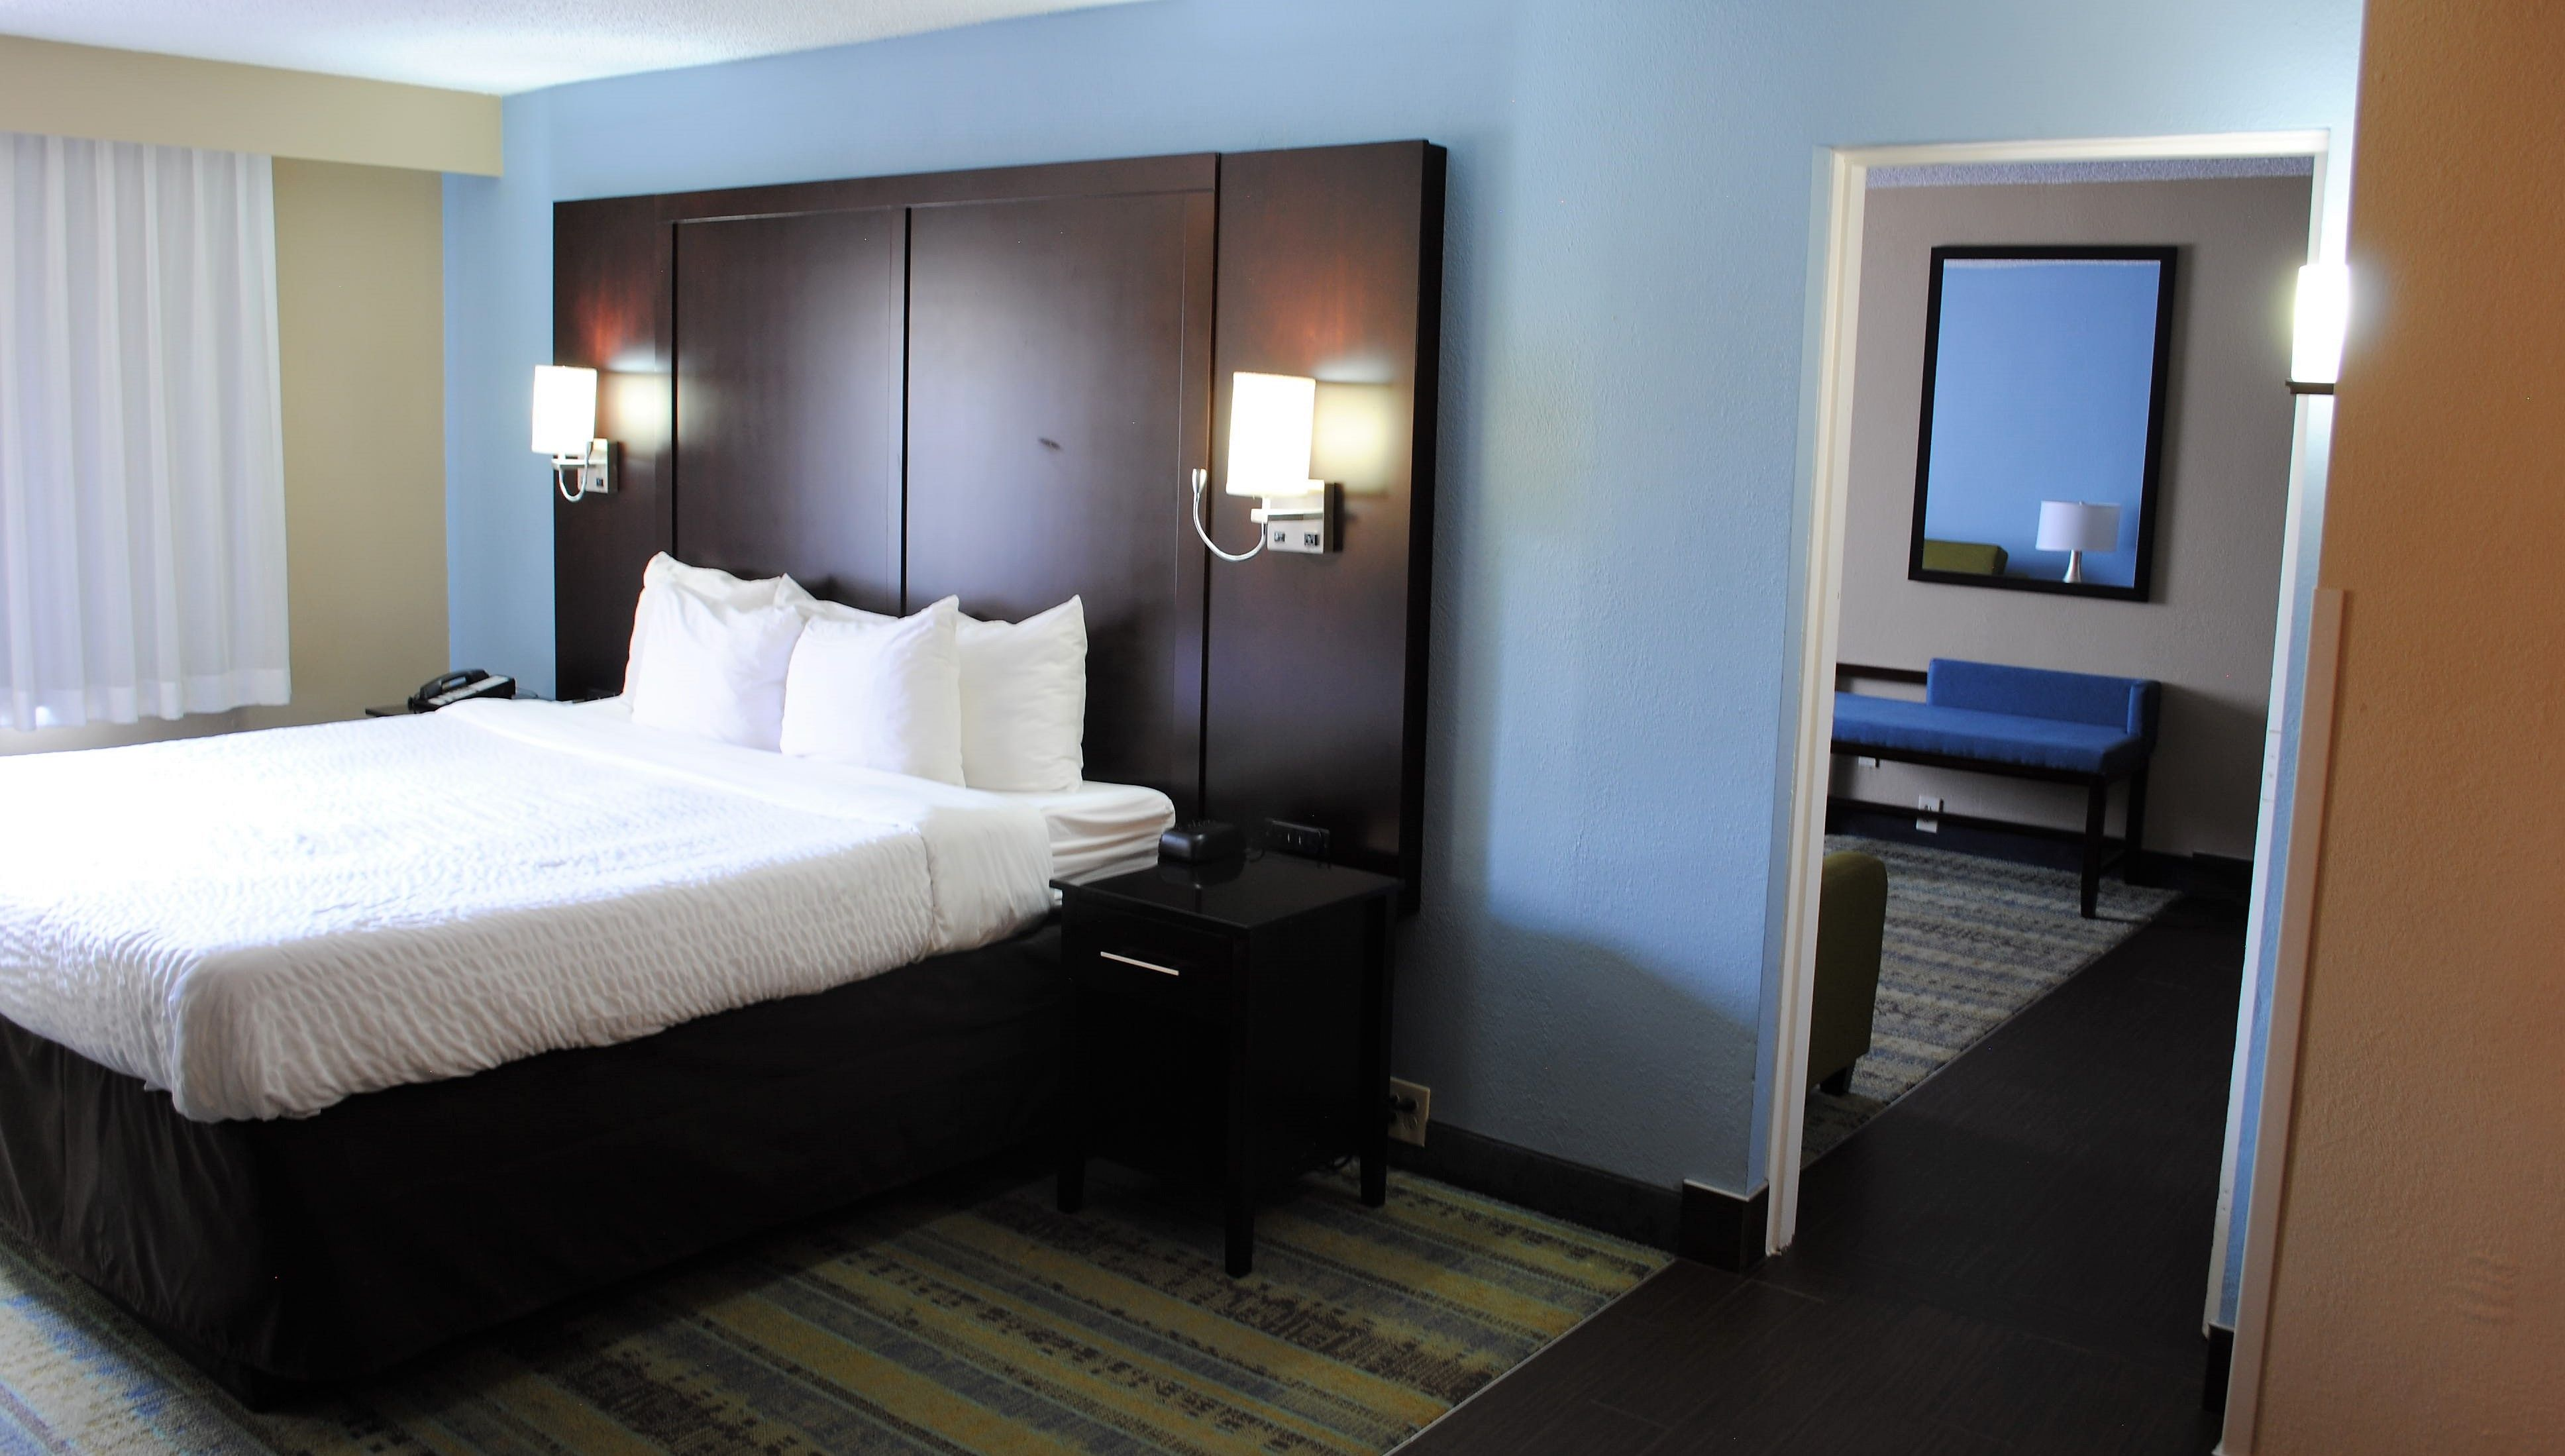 Hotel Rooms Suites In Lexington Ky Clarion Hotel North